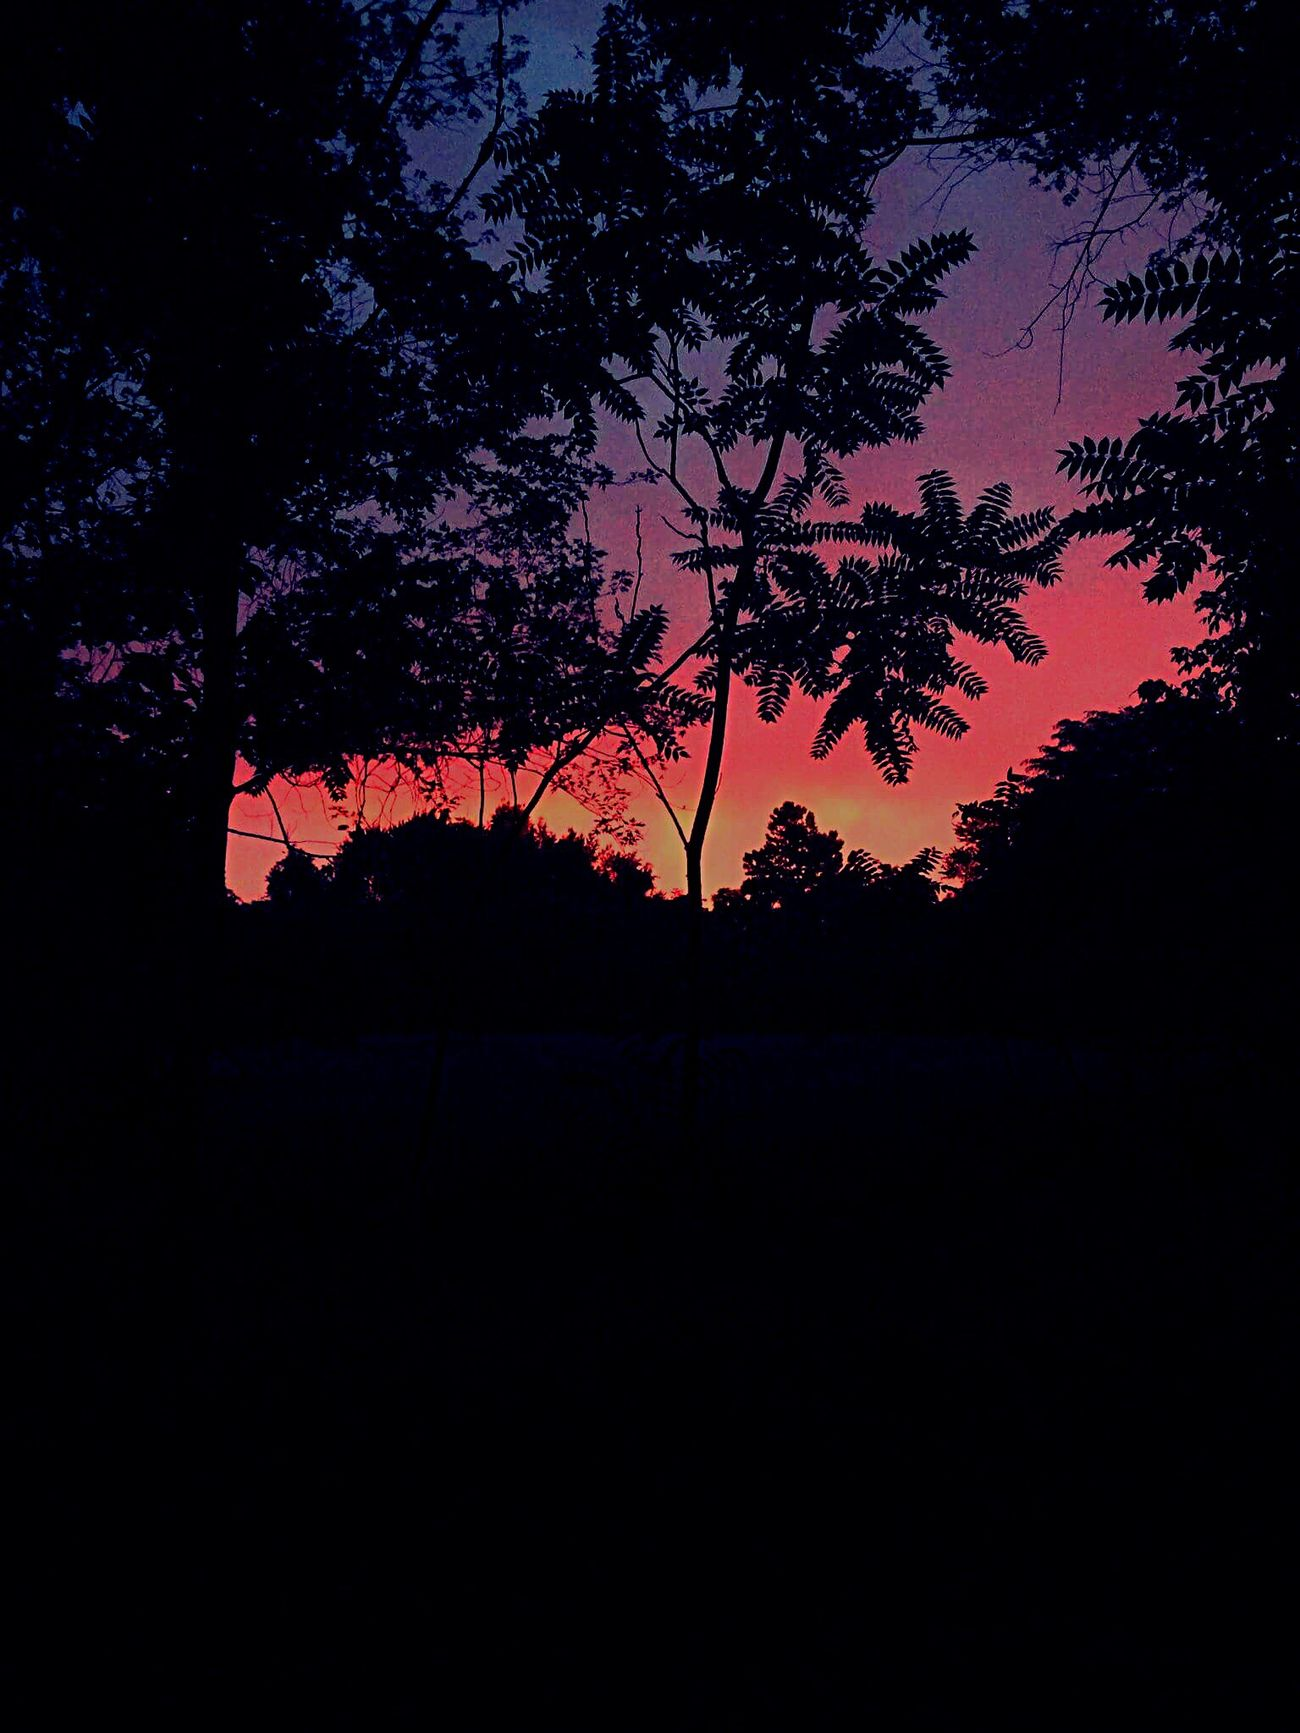 Sunset Layers And Colors Nature Beauty In Nature Black Walnut Tree State Park  Missouri Sky Tree Silhouette No People Tranquil Scene Outdoors Evening Evening Sky Scenics Tranquility Orange Color